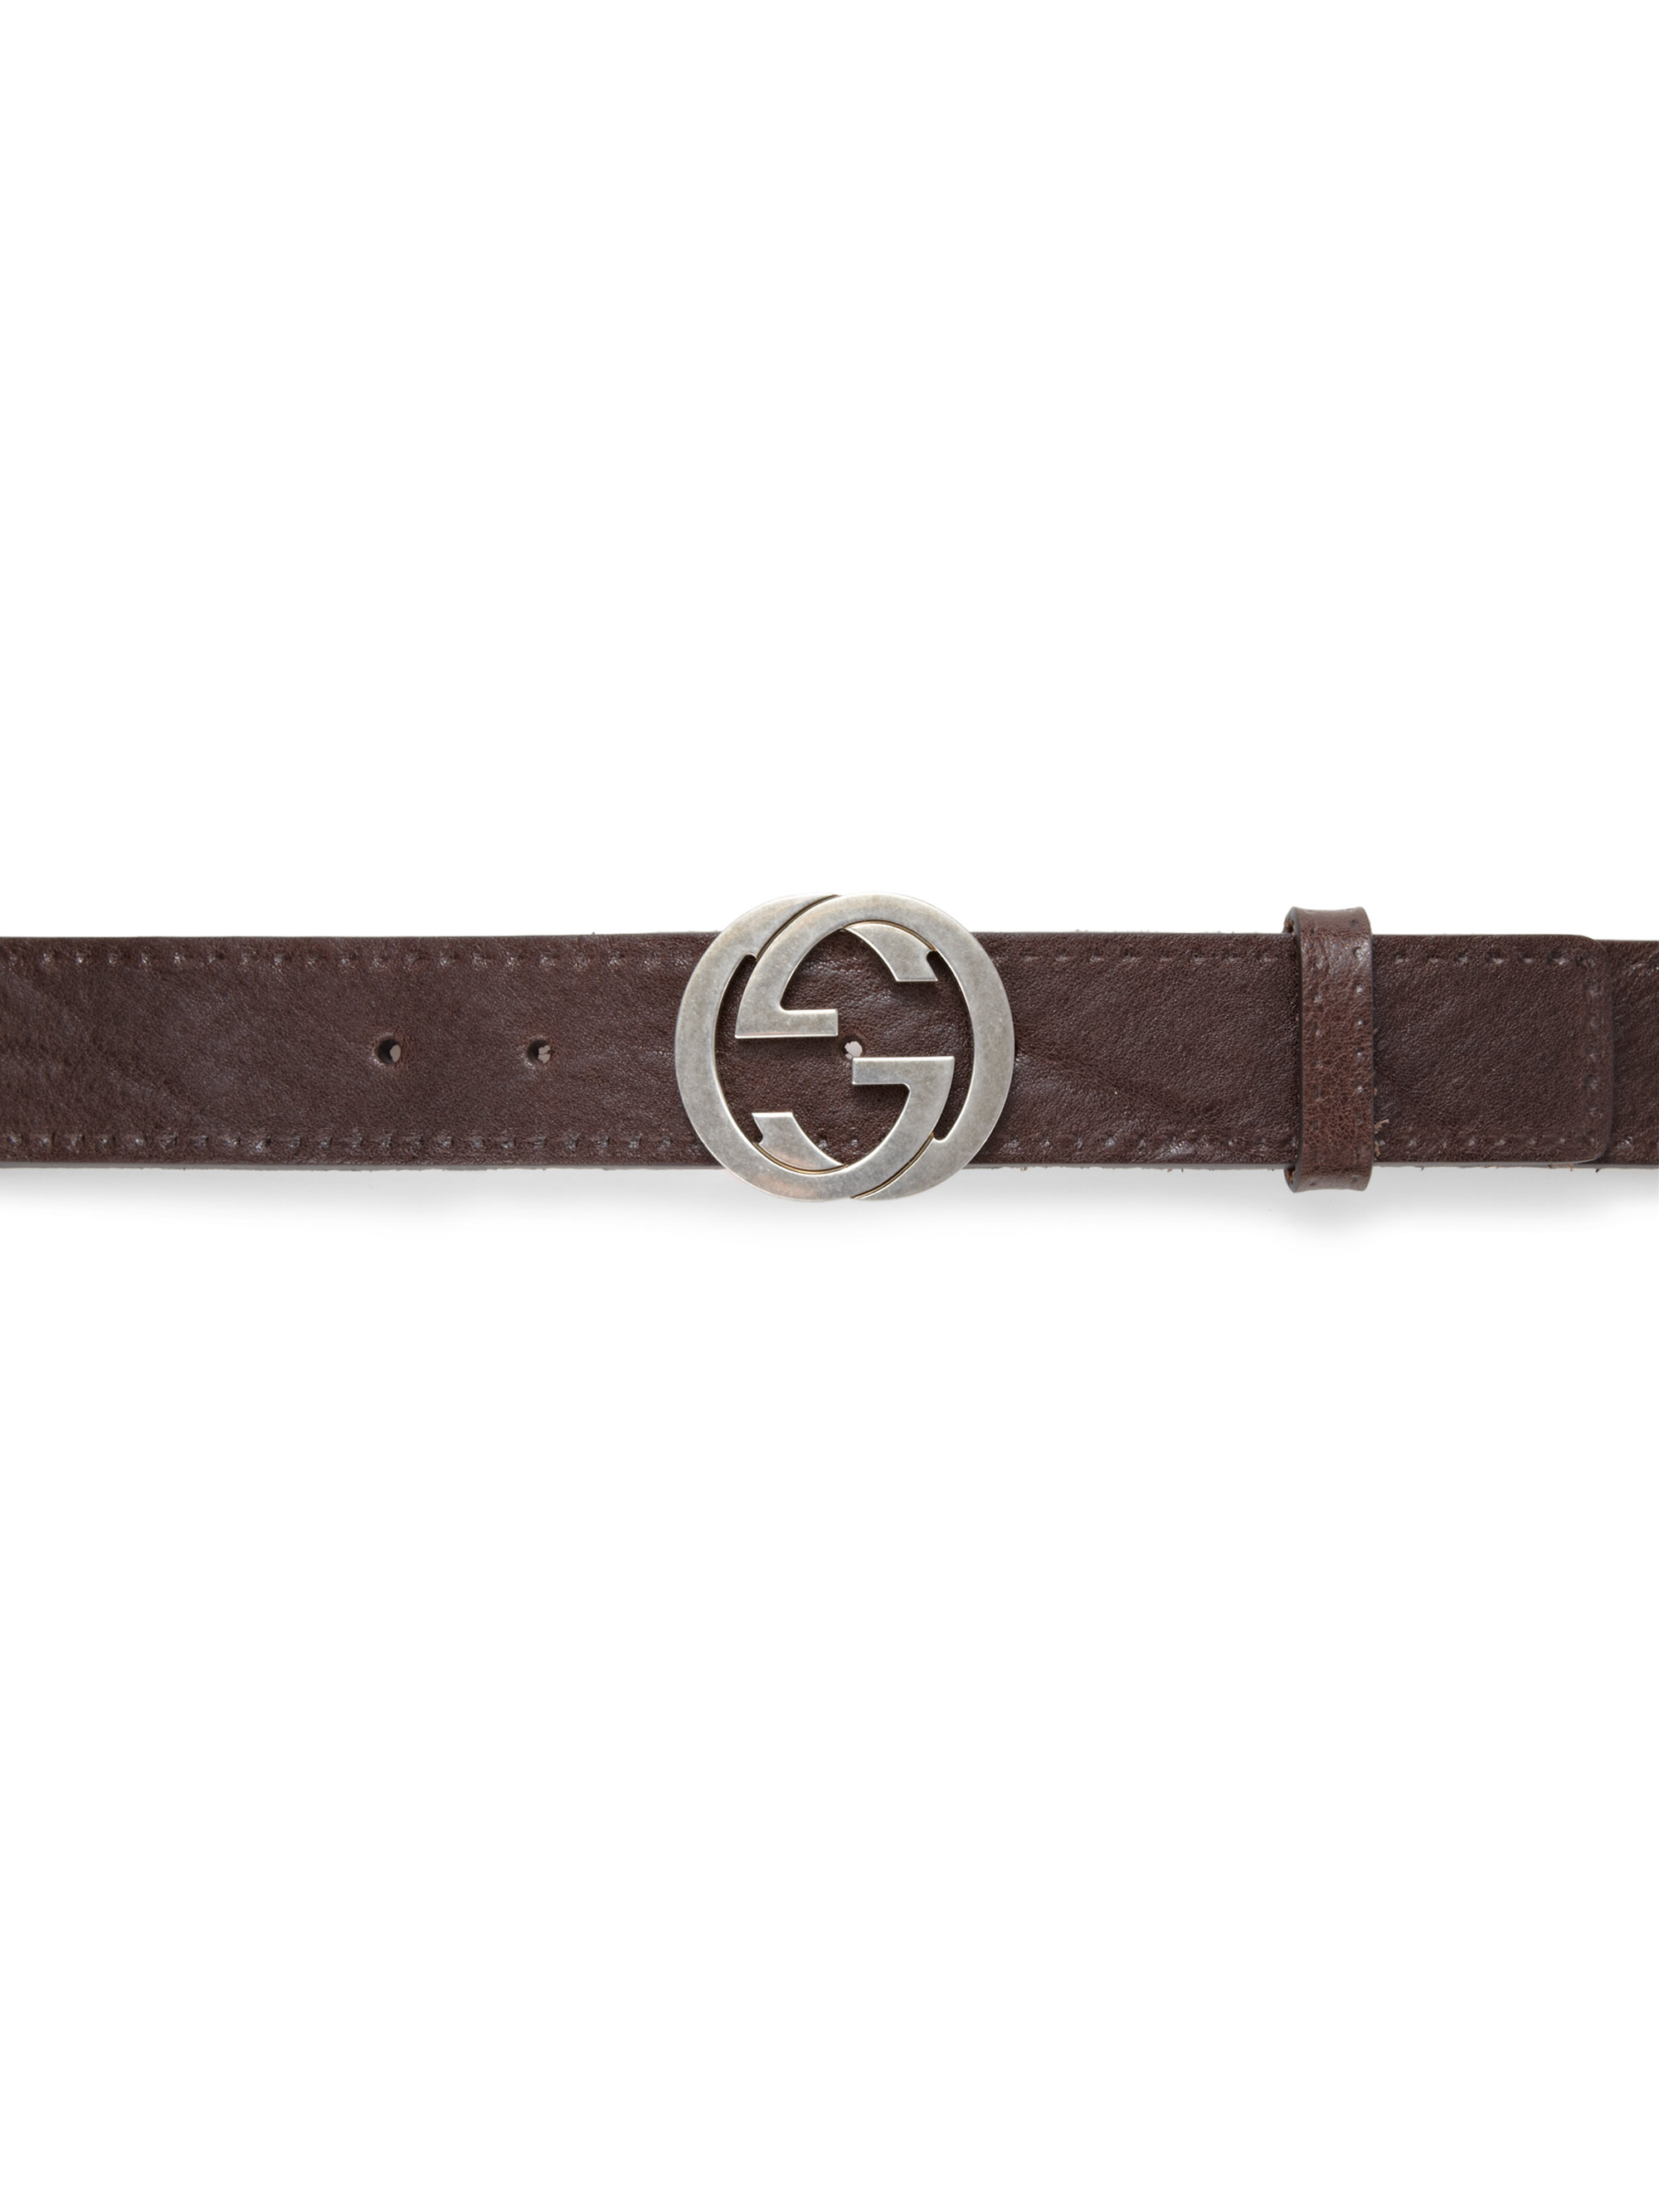 gucci interlocking g buckle leather belt in brown for